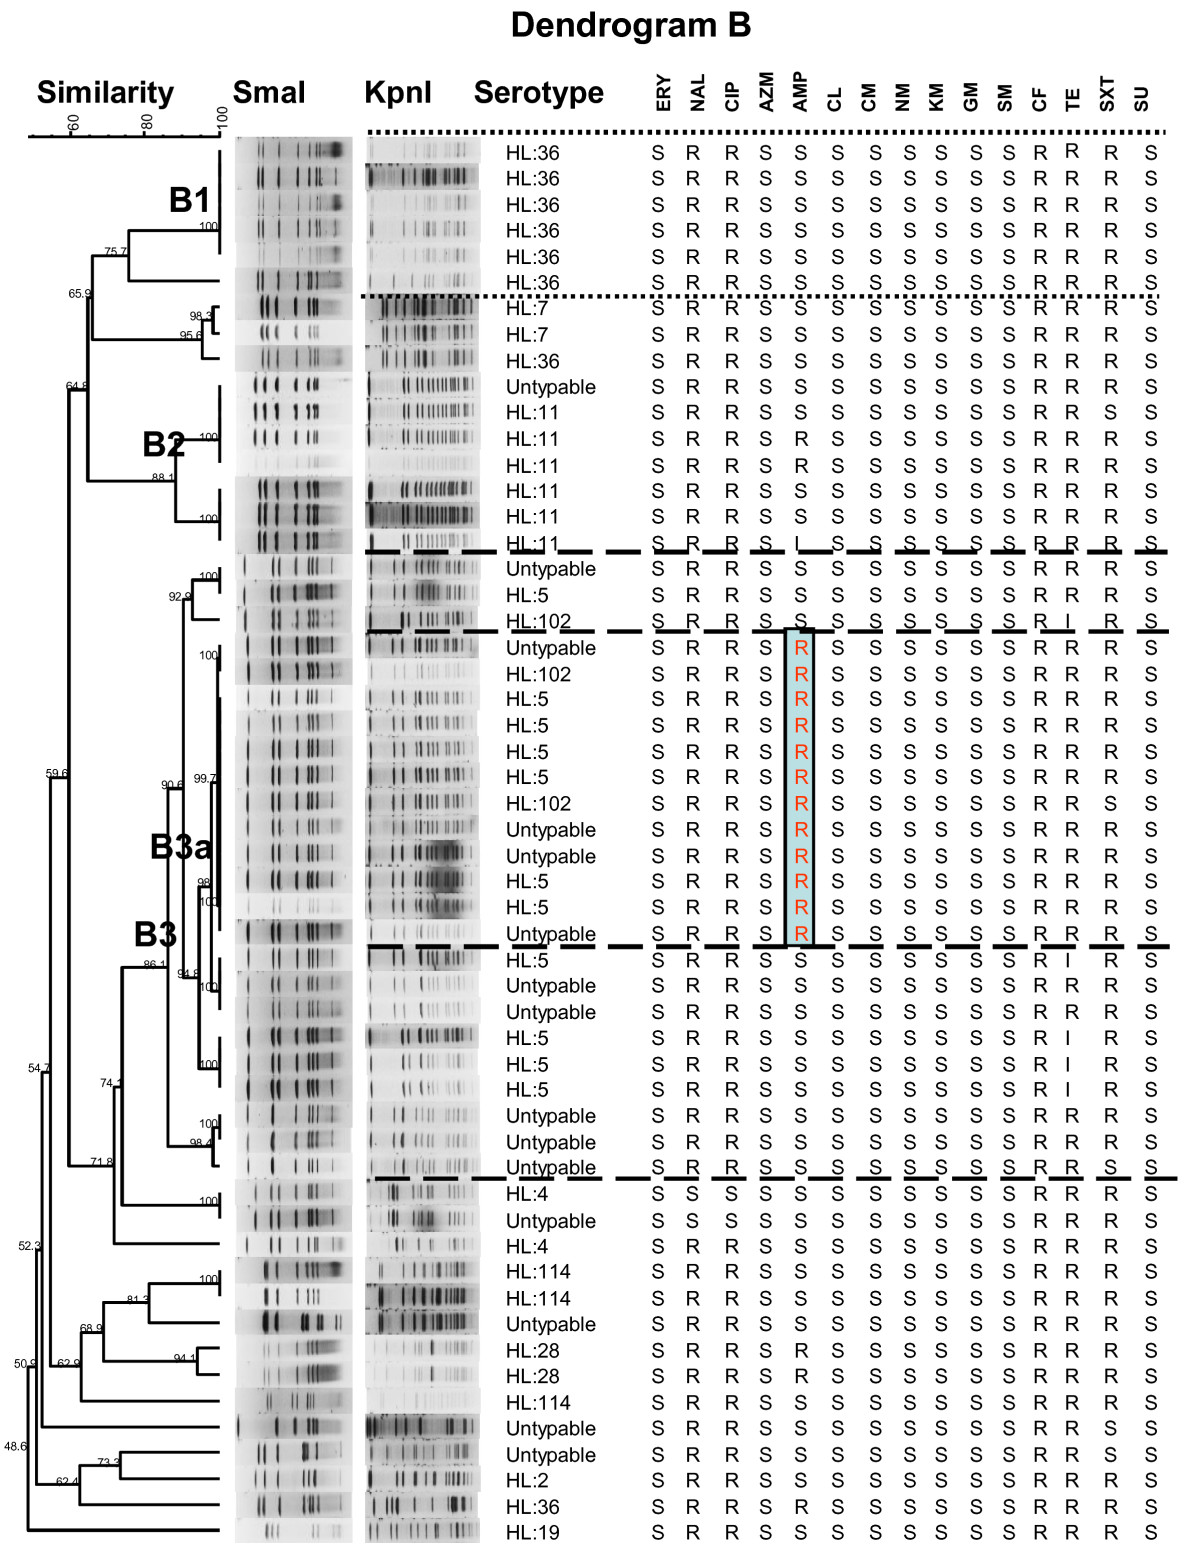 http://static-content.springer.com/image/art%3A10.1186%2F1757-4749-2-15/MediaObjects/13099_2010_Article_41_Fig3_HTML.jpg